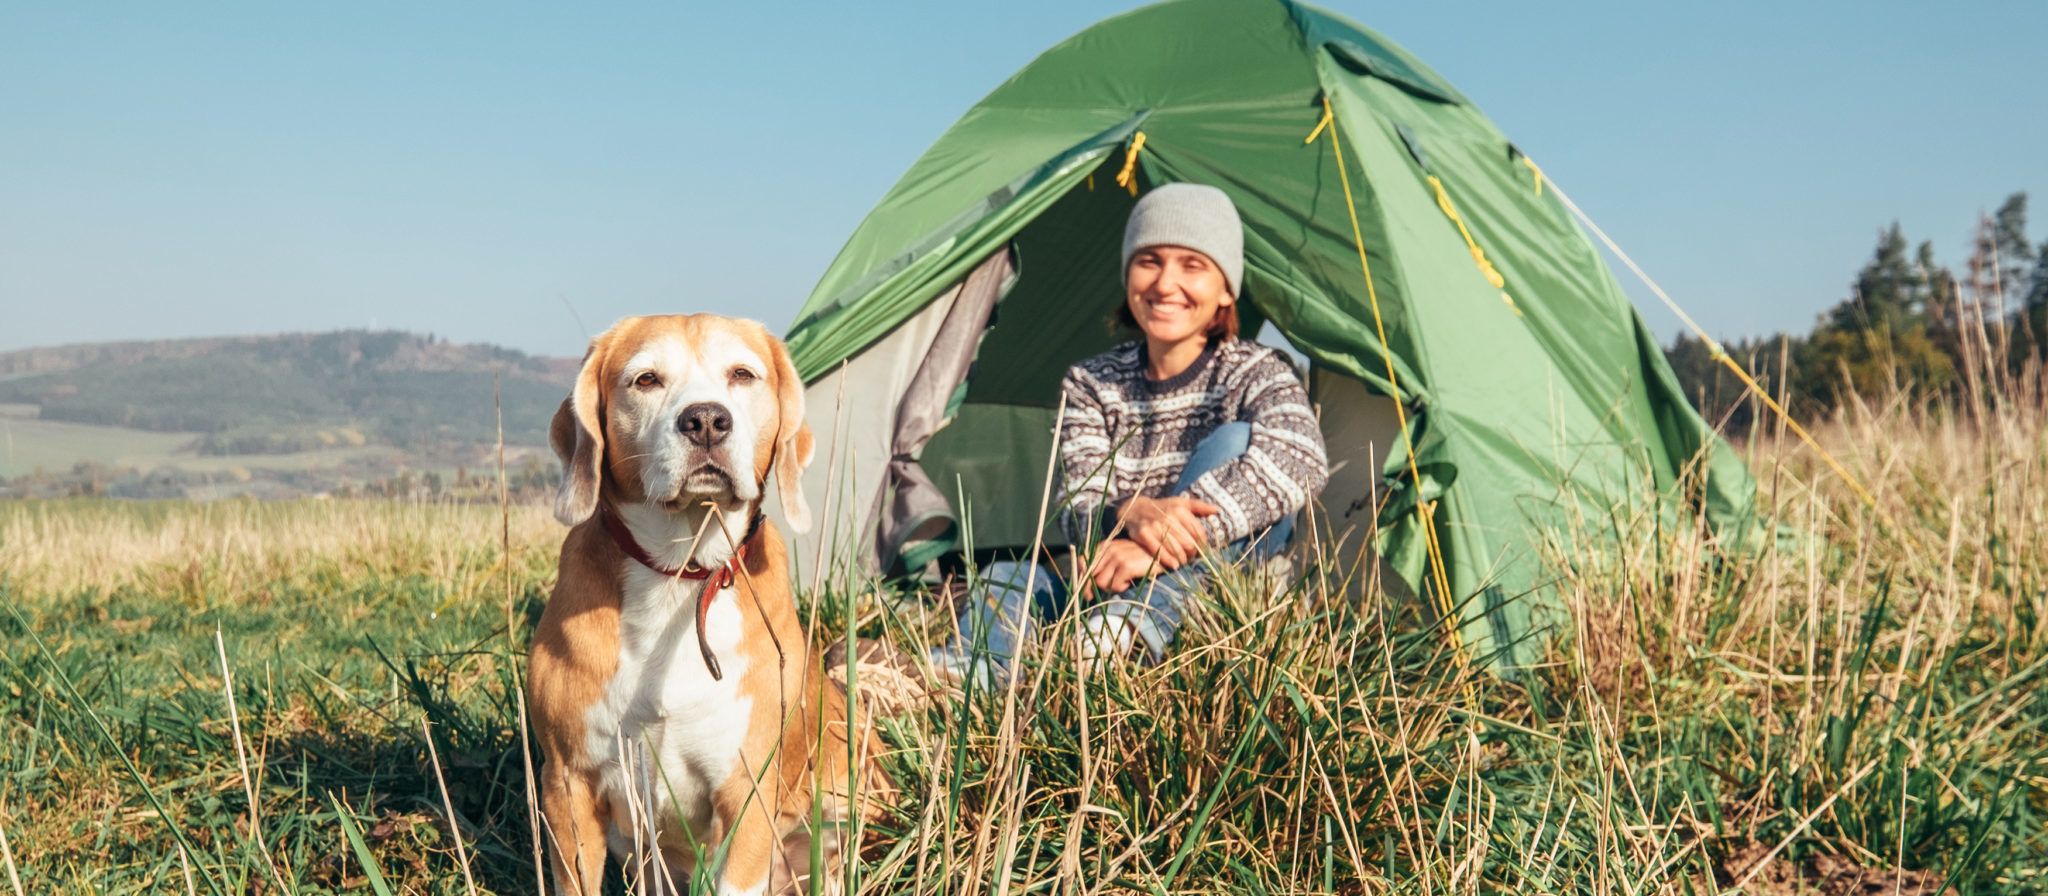 State Parks That Allow Dogs